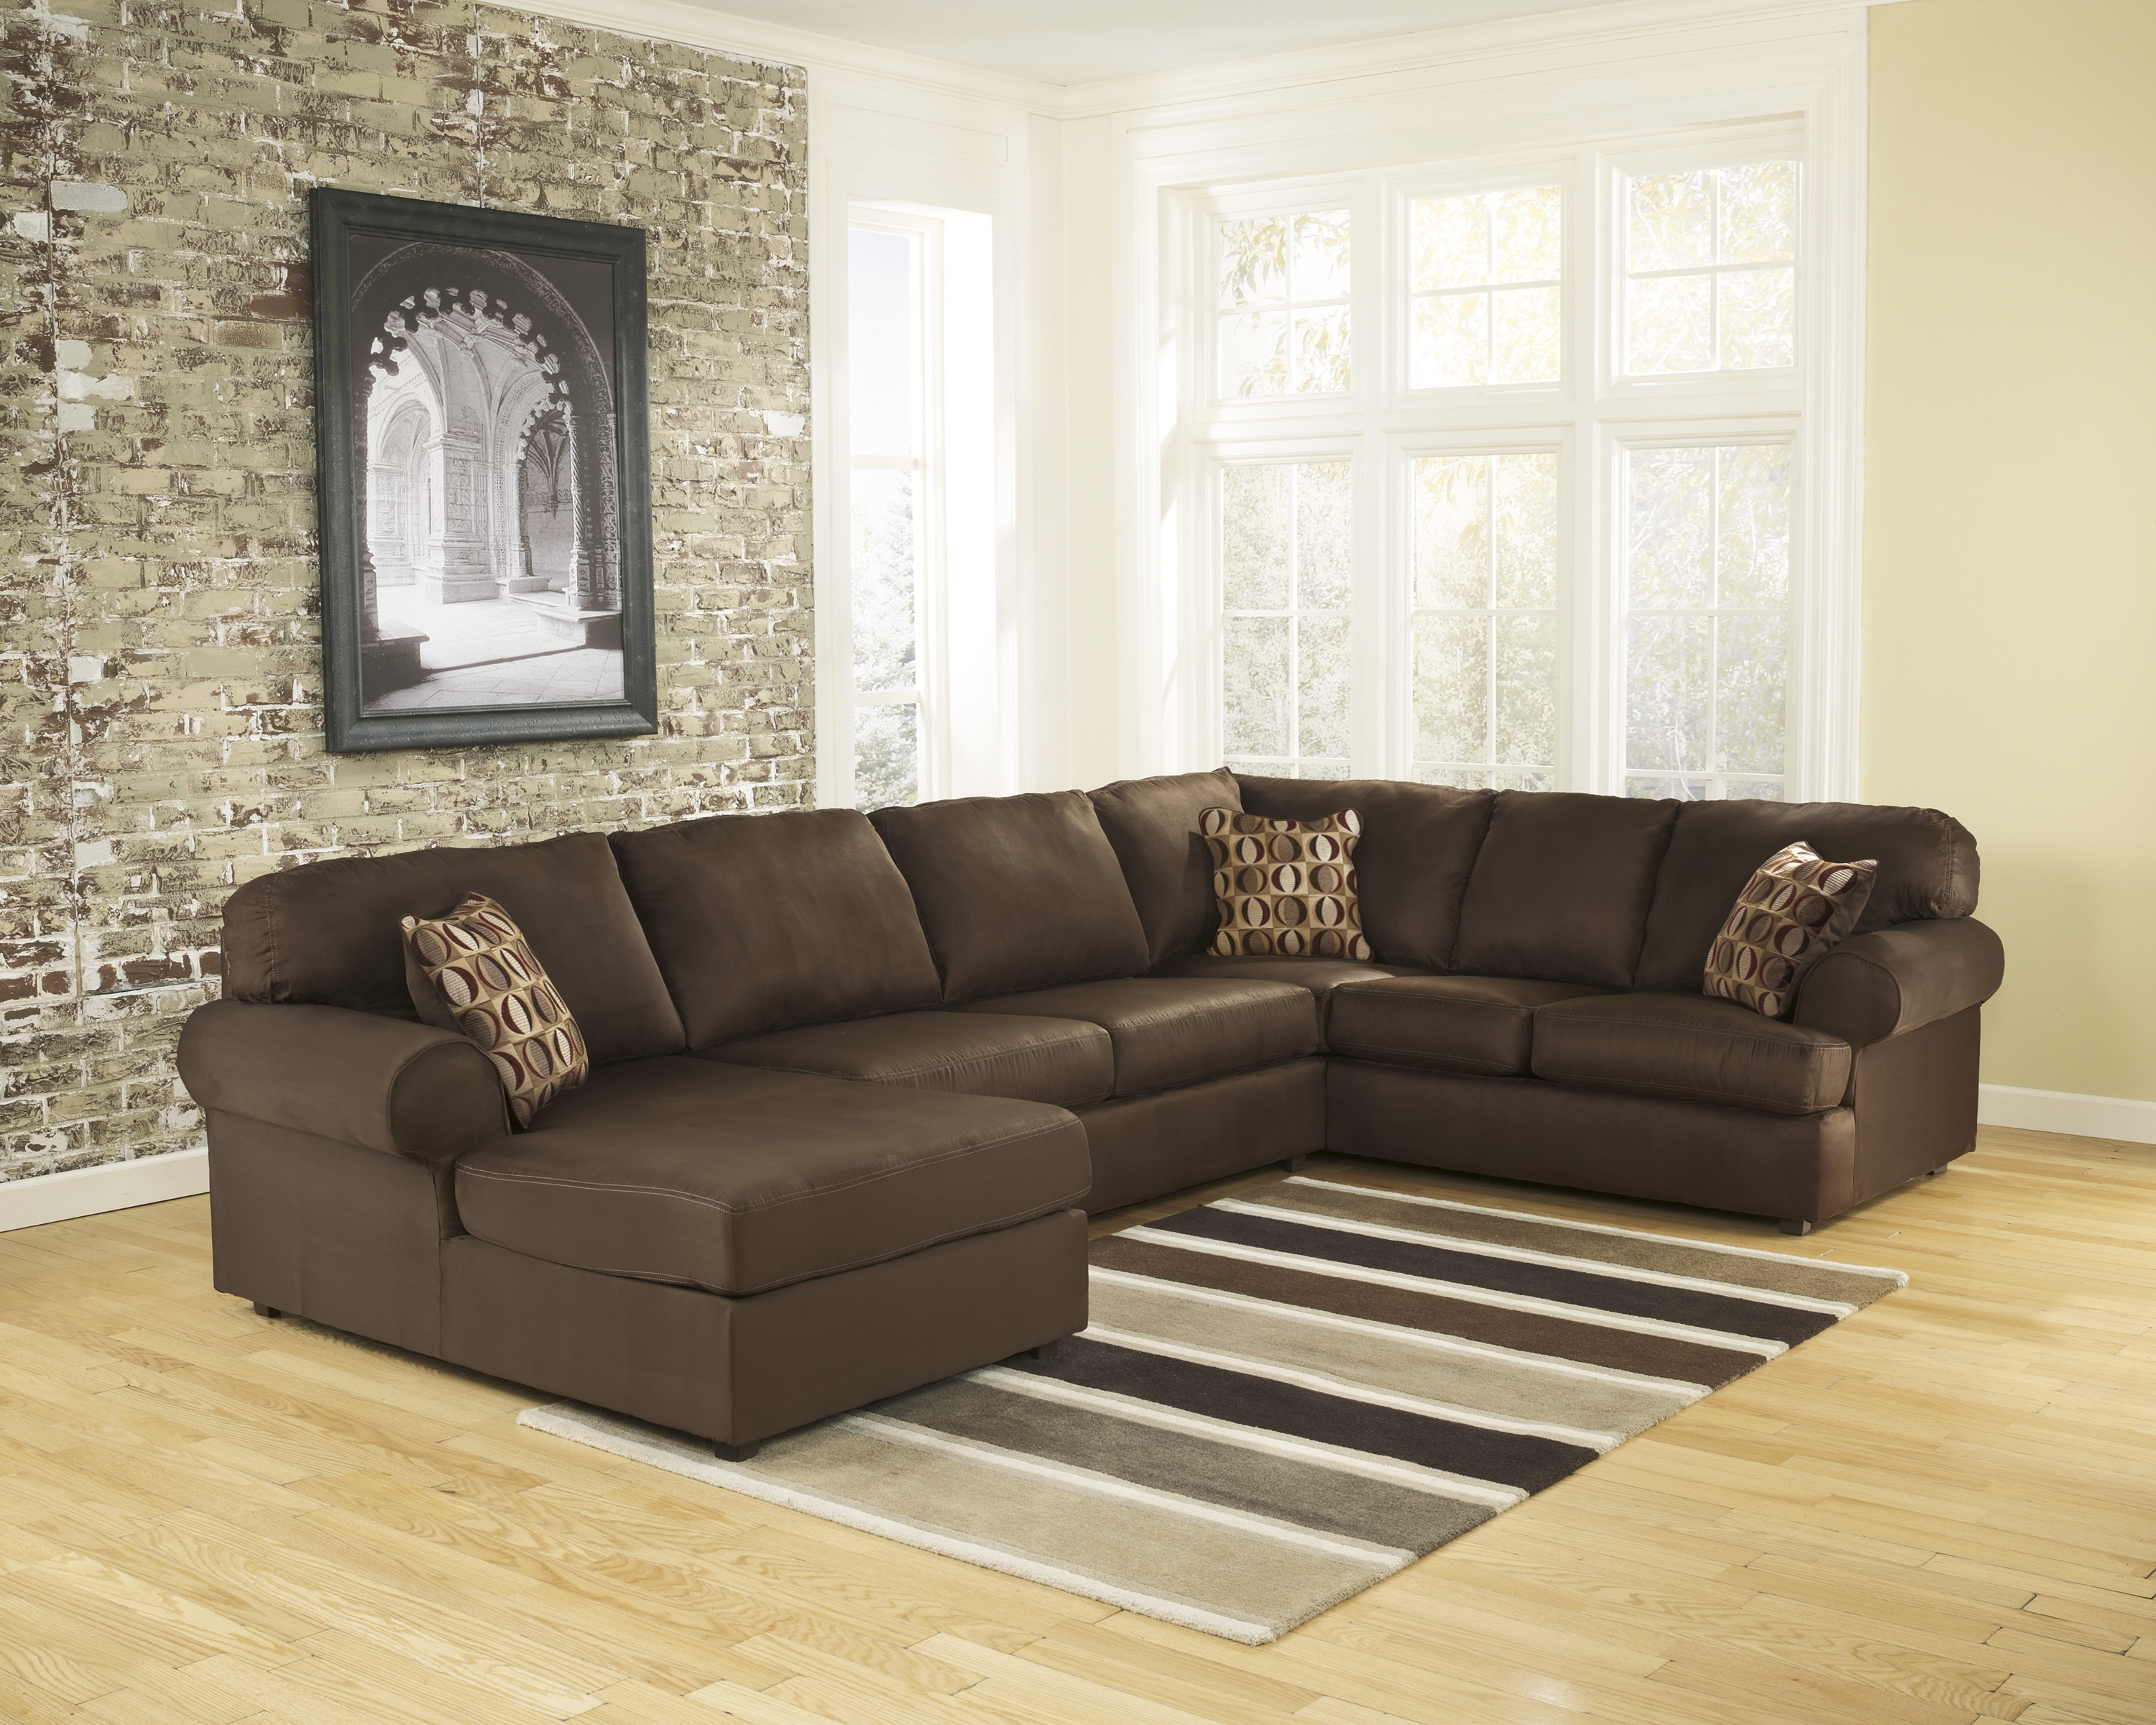 Best Ashleys Furniture Sectionals Pictures – Liltigertoo Pertaining To Most Popular 10X8 Sectional Sofas (View 2 of 15)